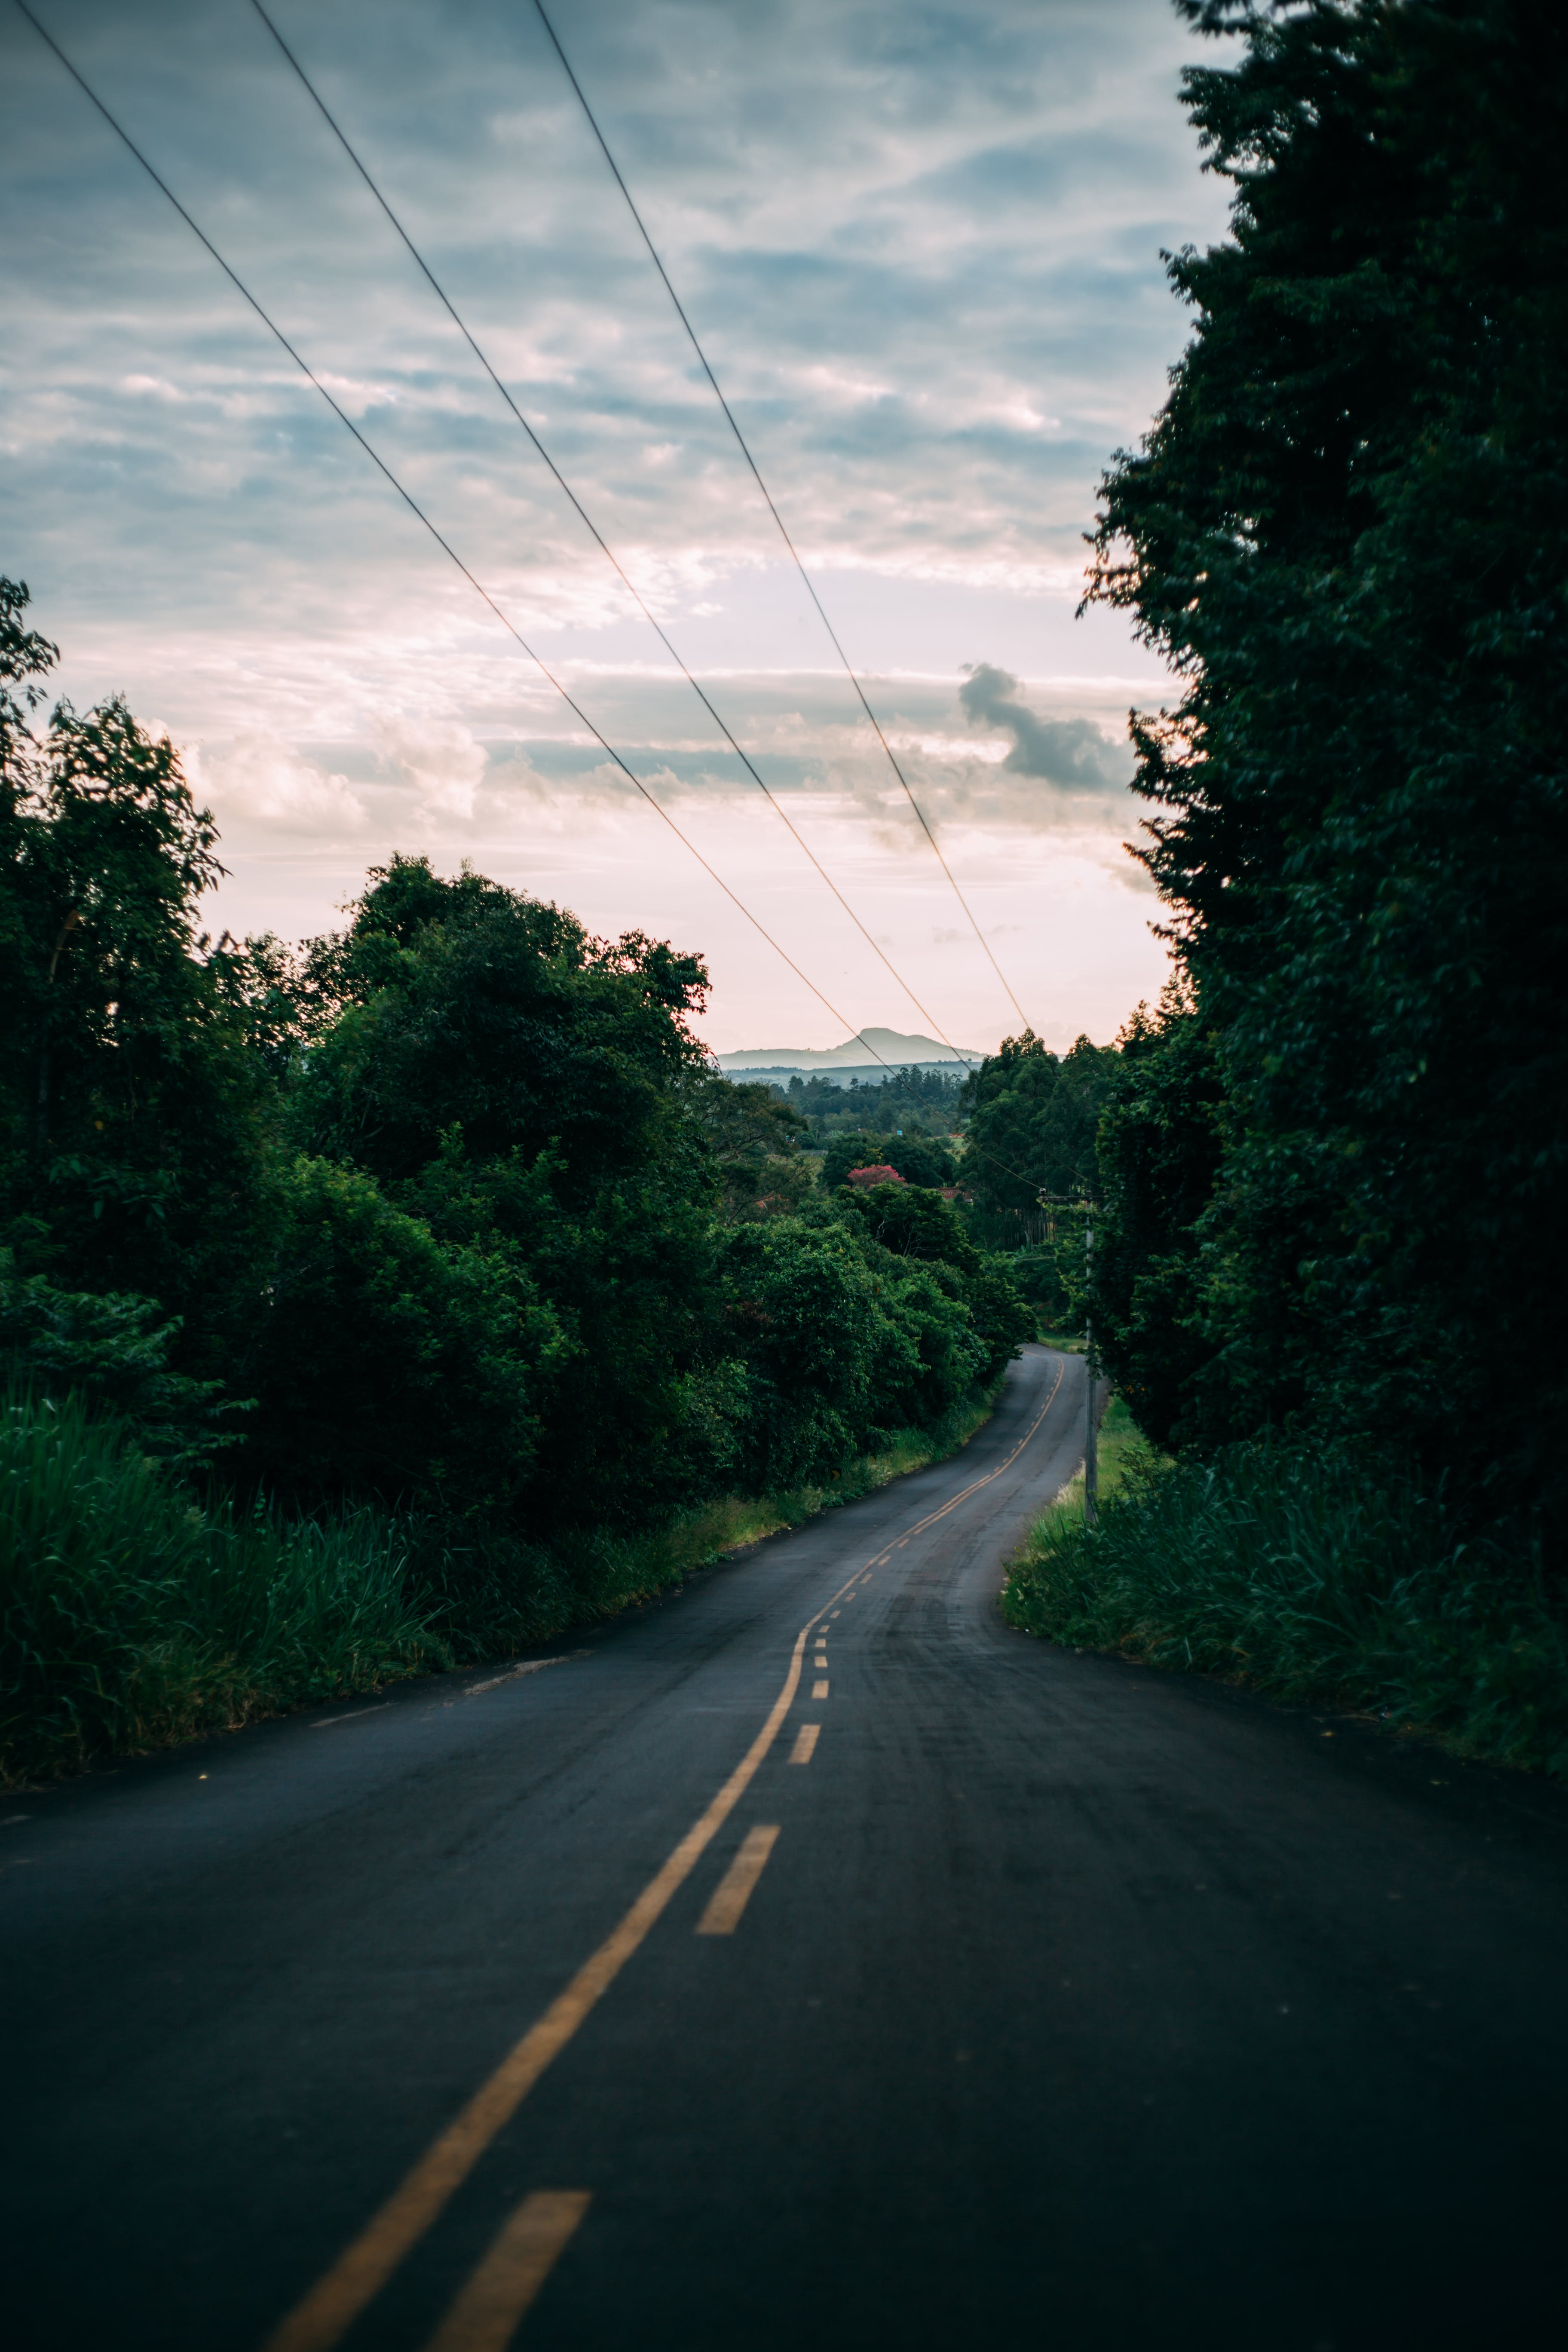 downhill, forest, power lines